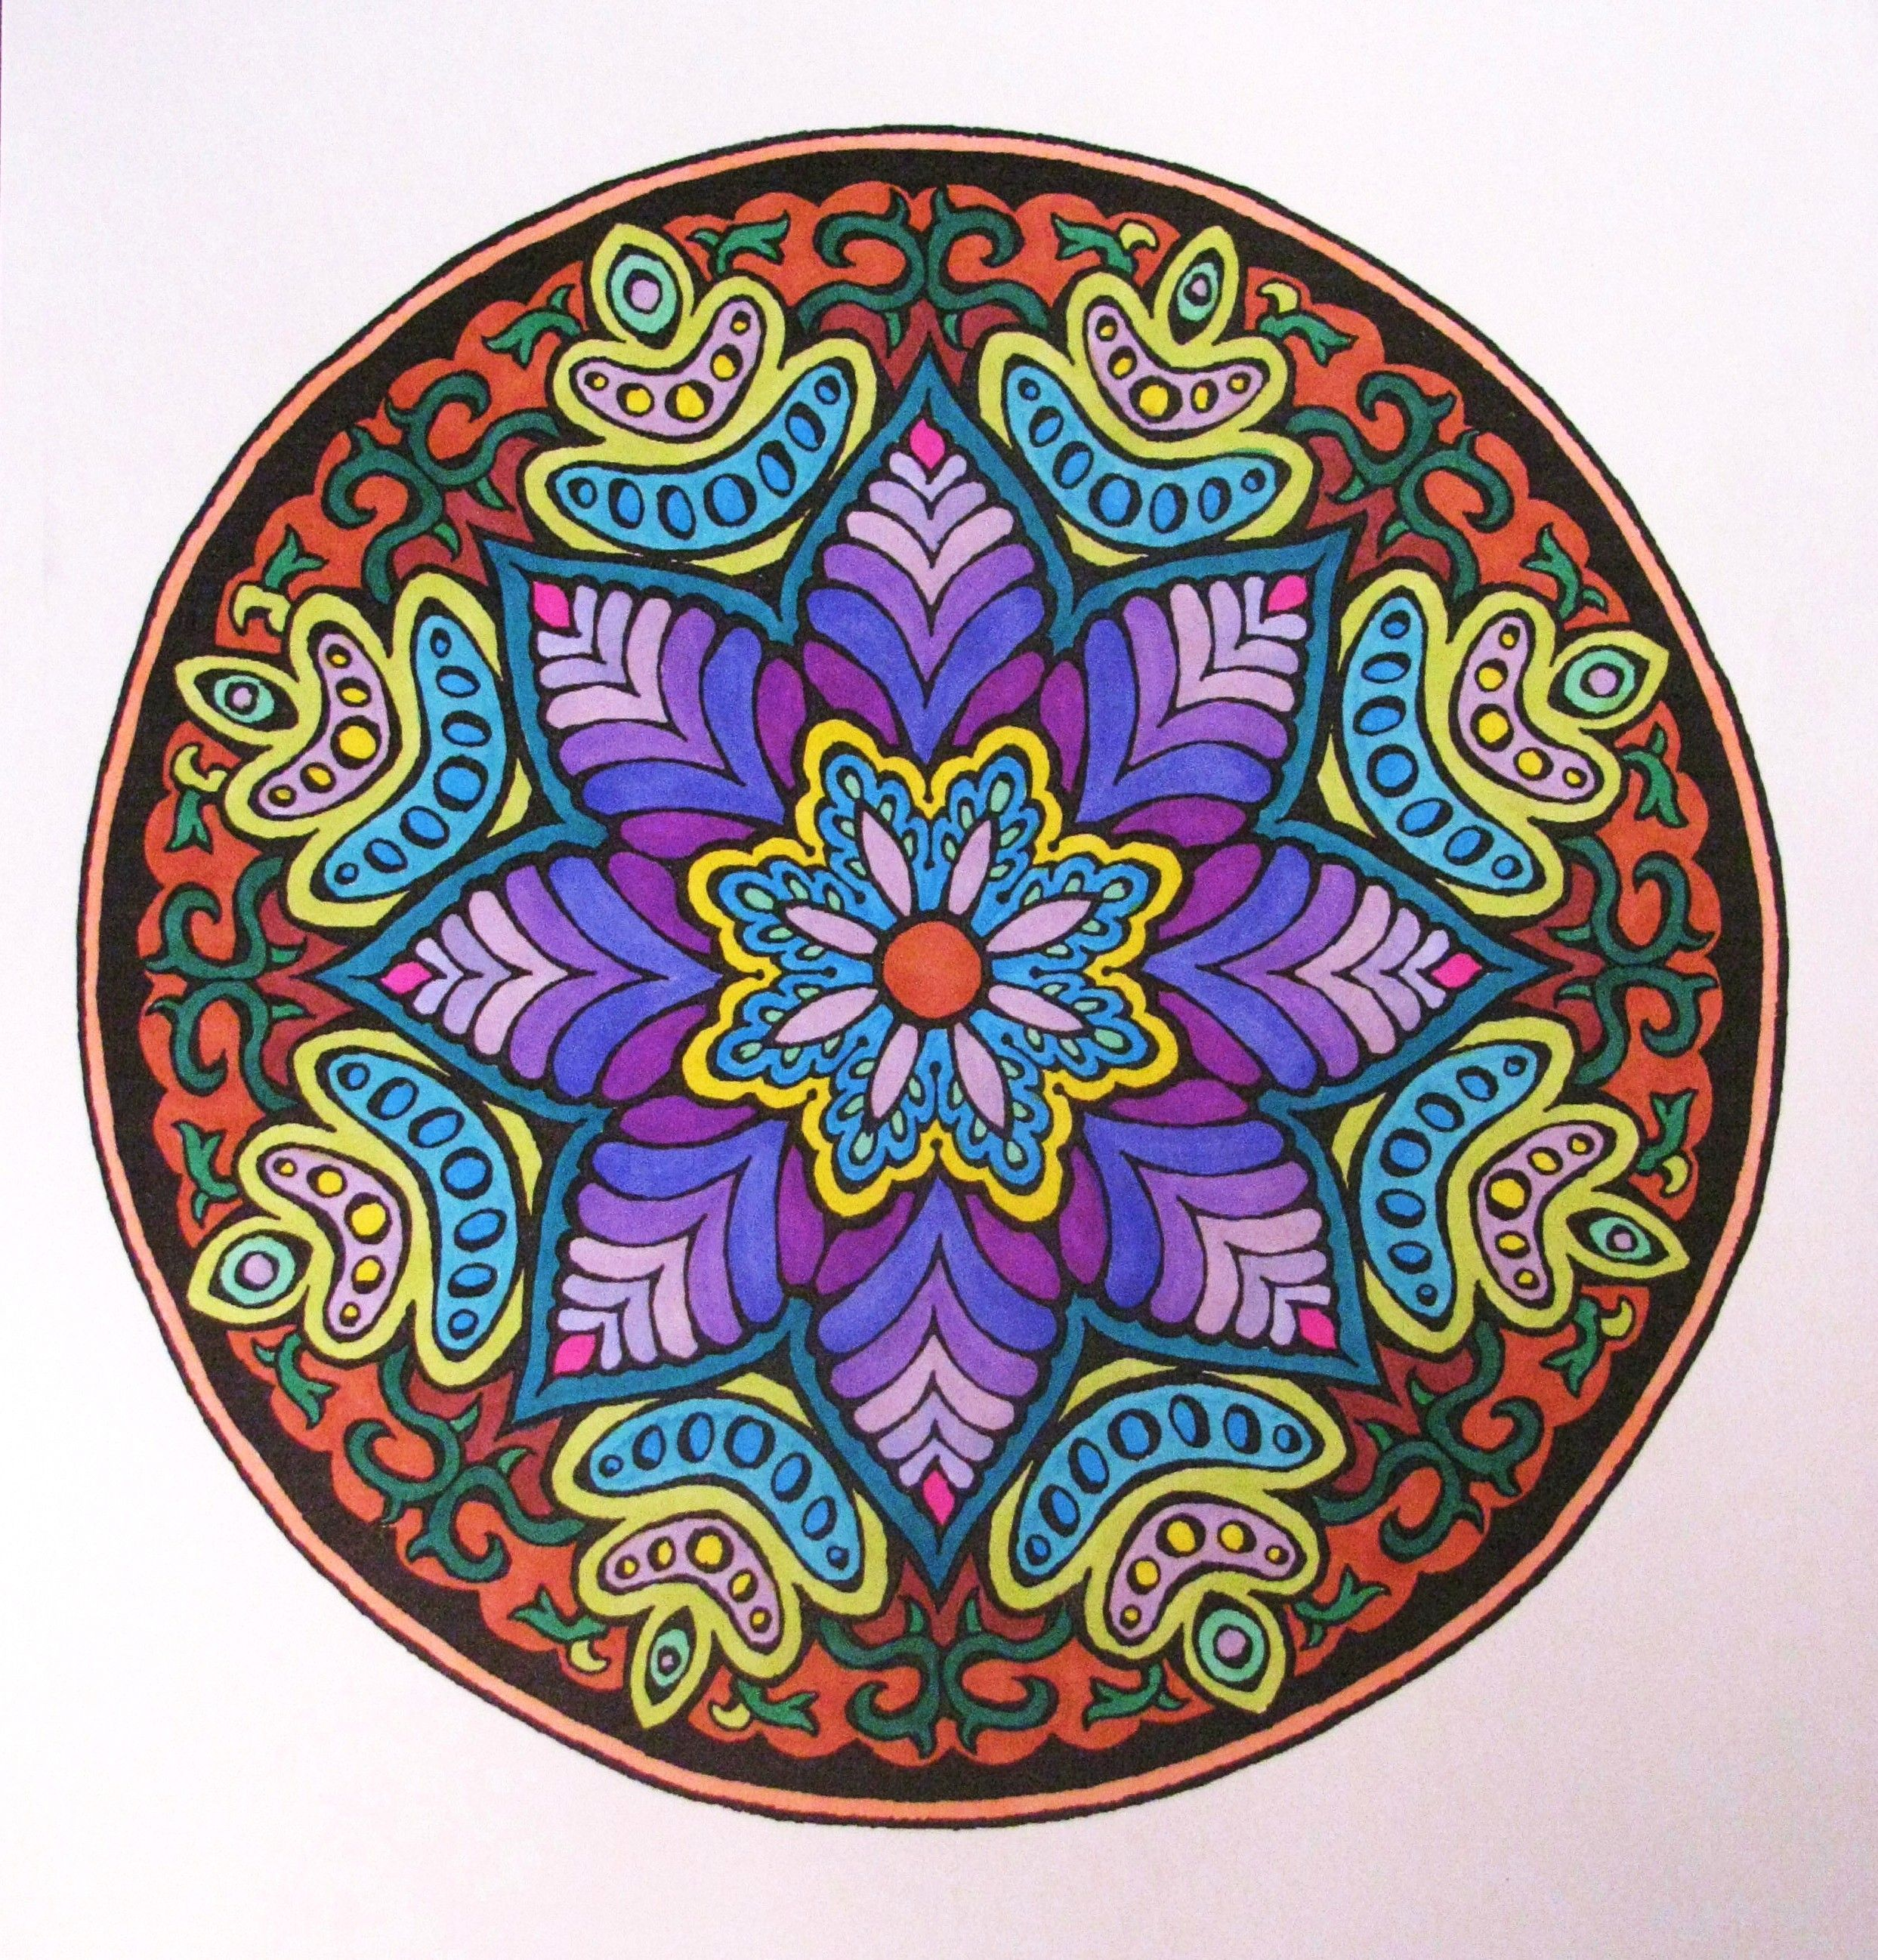 From the Mystic Mandala coloring book from Dover